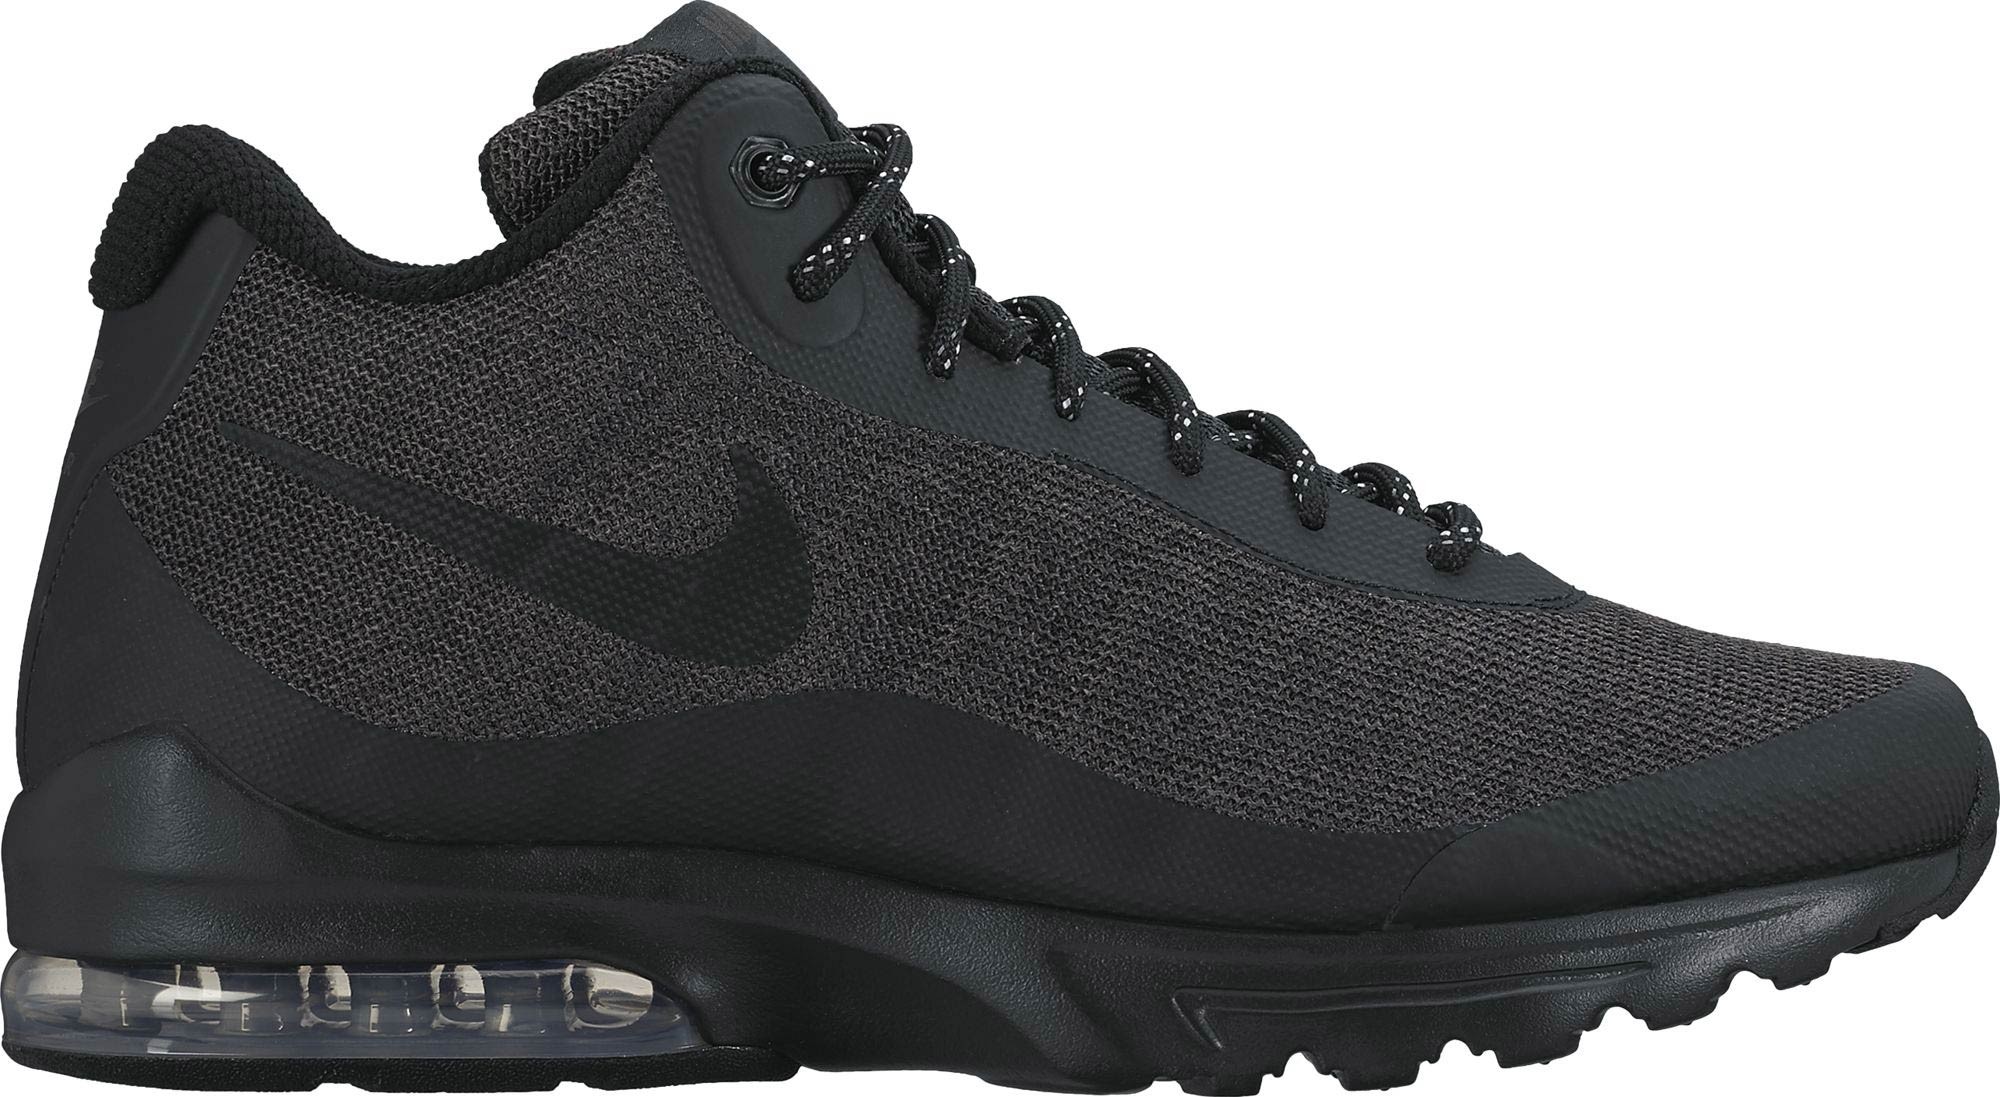 966879c57b7 Nike AIR MAX INVIGOR MID SHOE